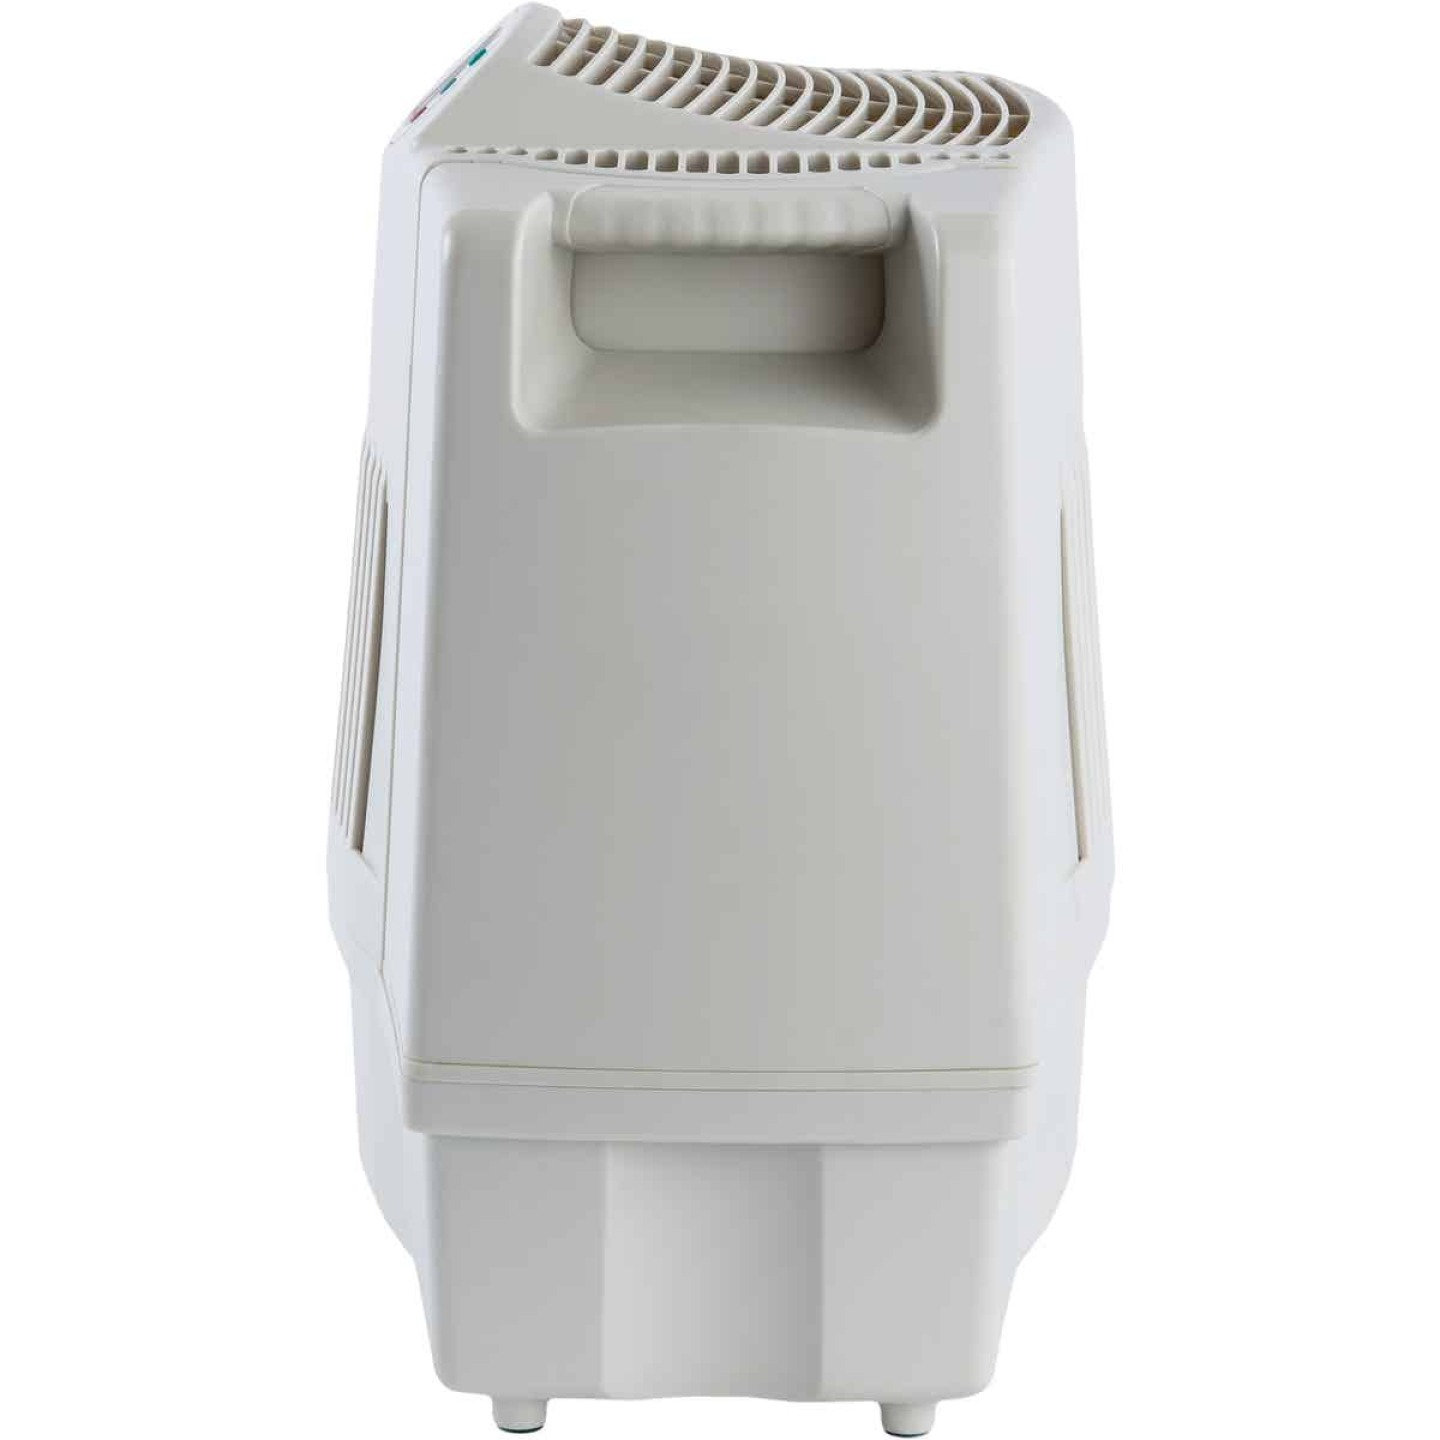 AirCare 2-1/2 Gal. Capacity 2600 Sq. Ft. Mini Console Evaporative Humidifier Image 2